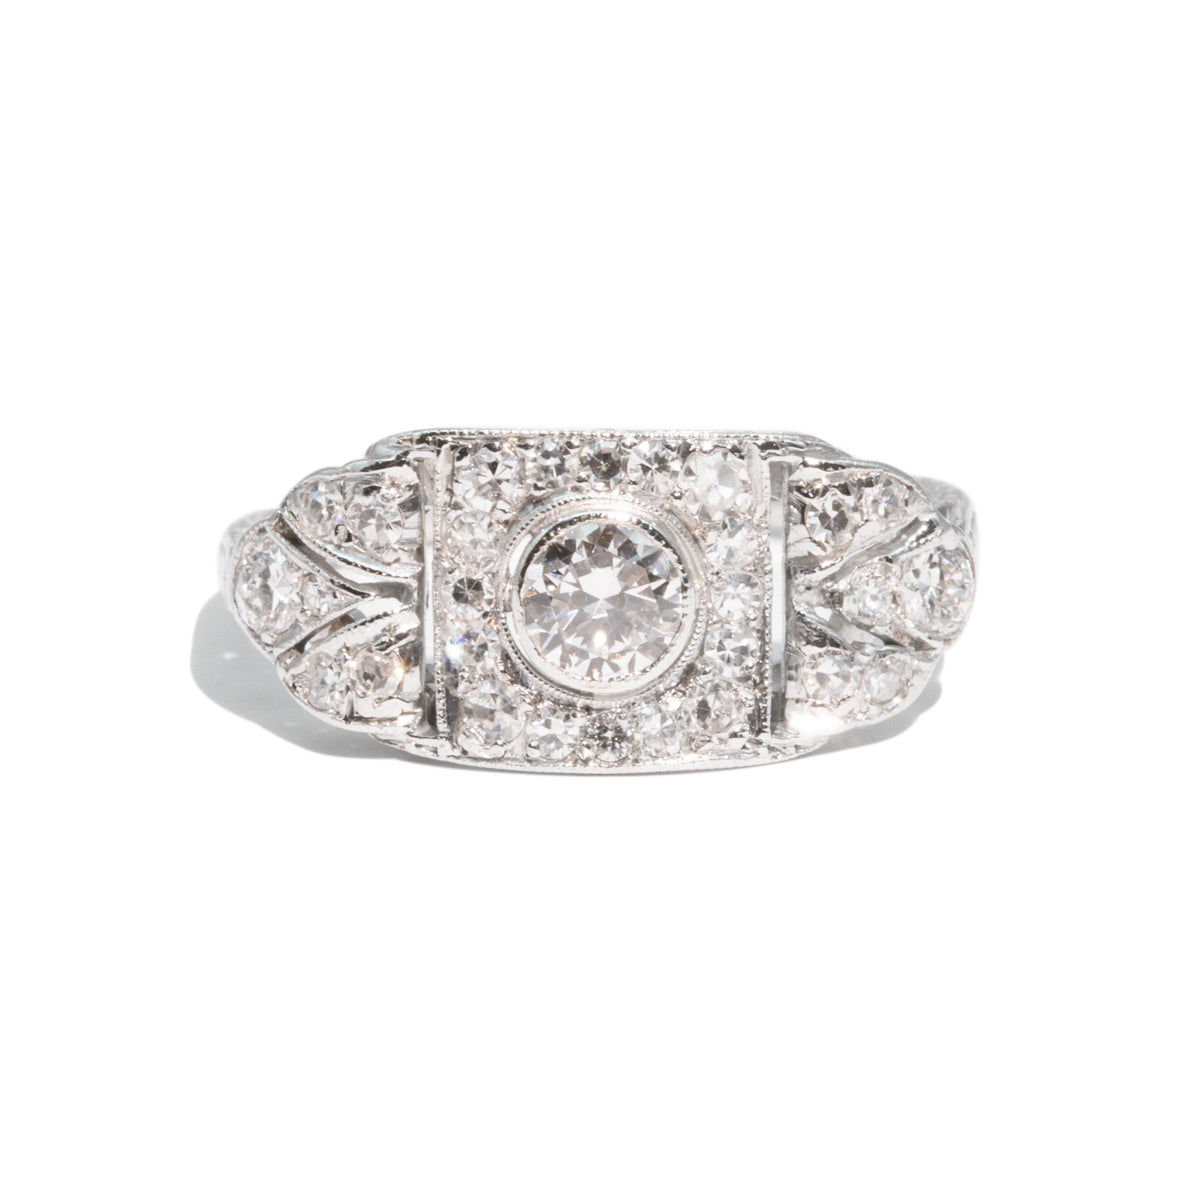 The Gwyneth Vintage Diamond Ring